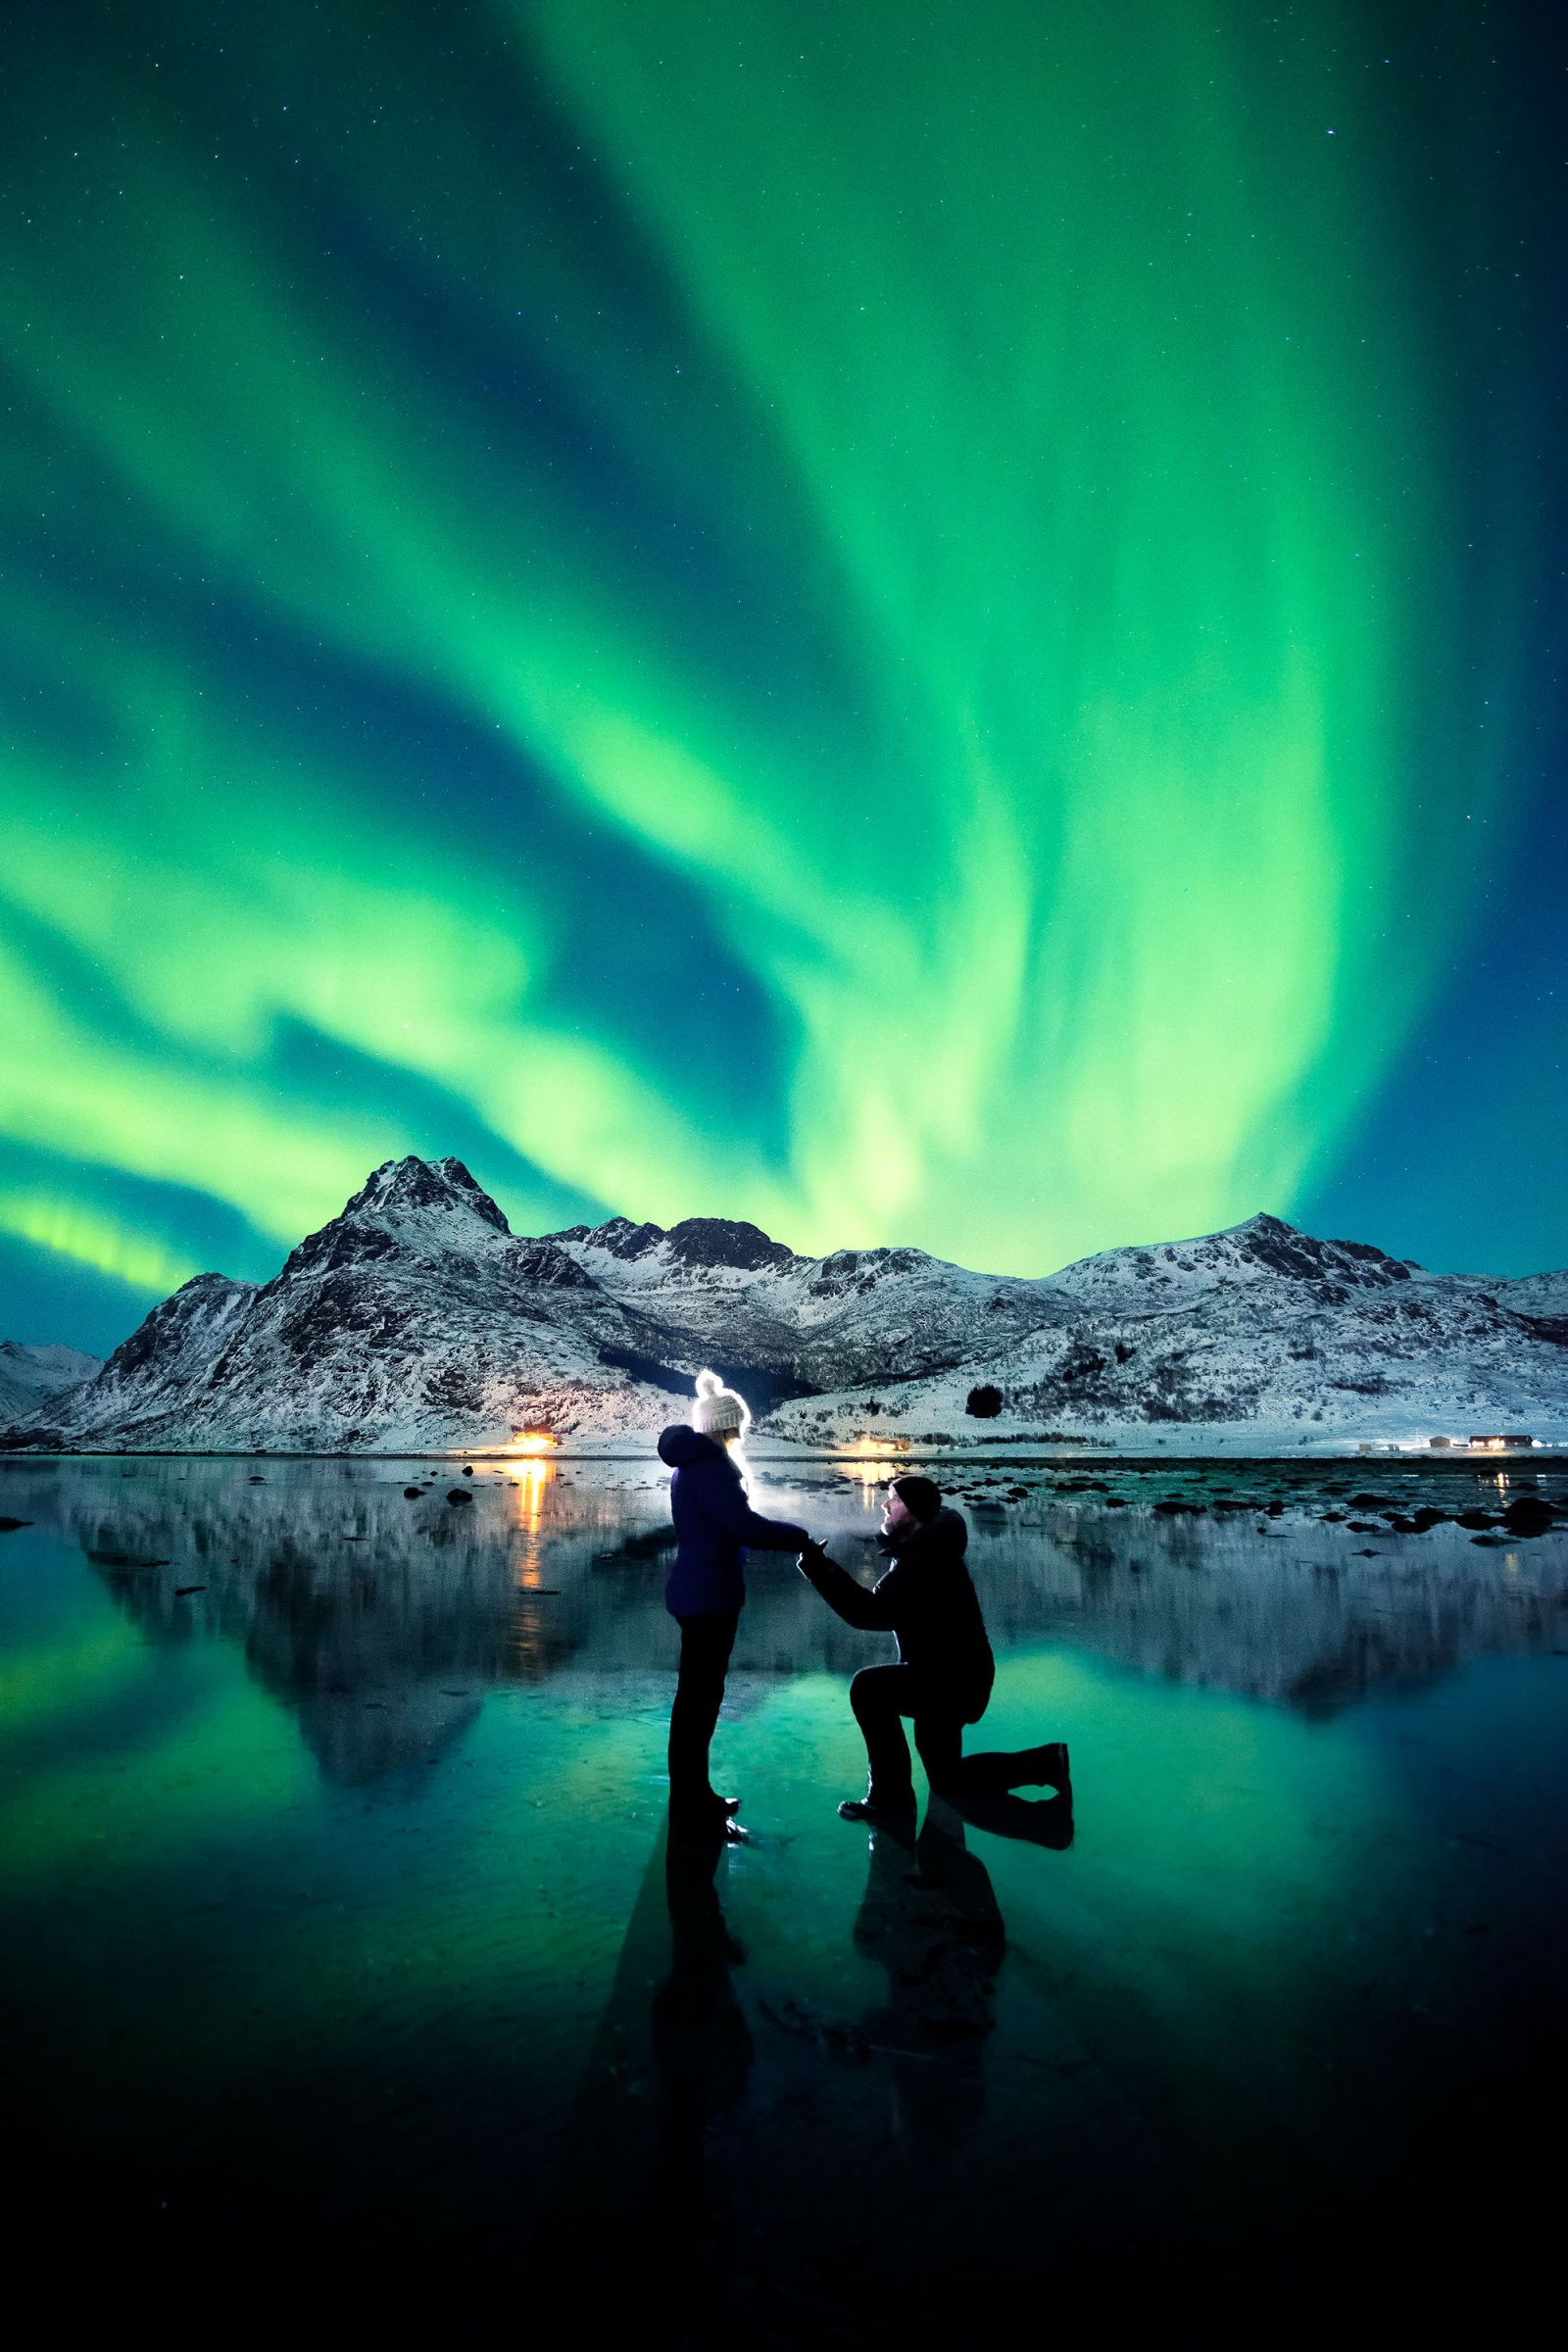 Northern Lights Coupon Book Photographer Proposes Under The Northern Lights Achieves The Most